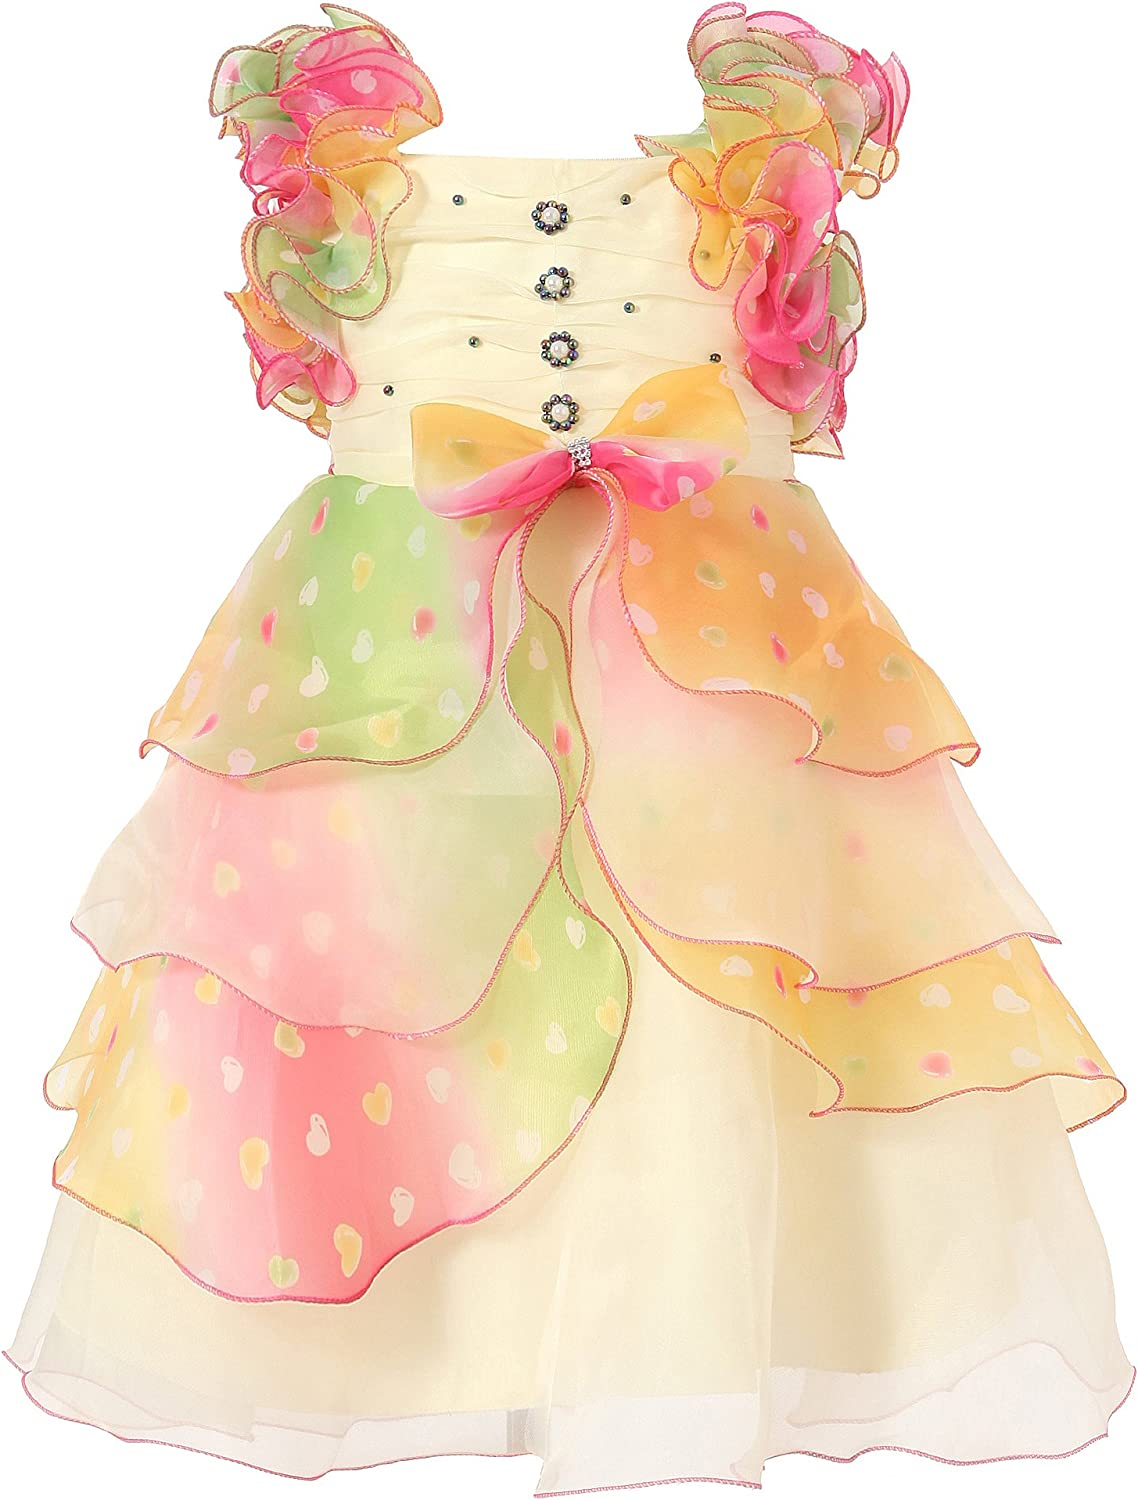 Richie House Girls' Dress with Pastel Ruffles and Pearls Size 3-12Y RH0920